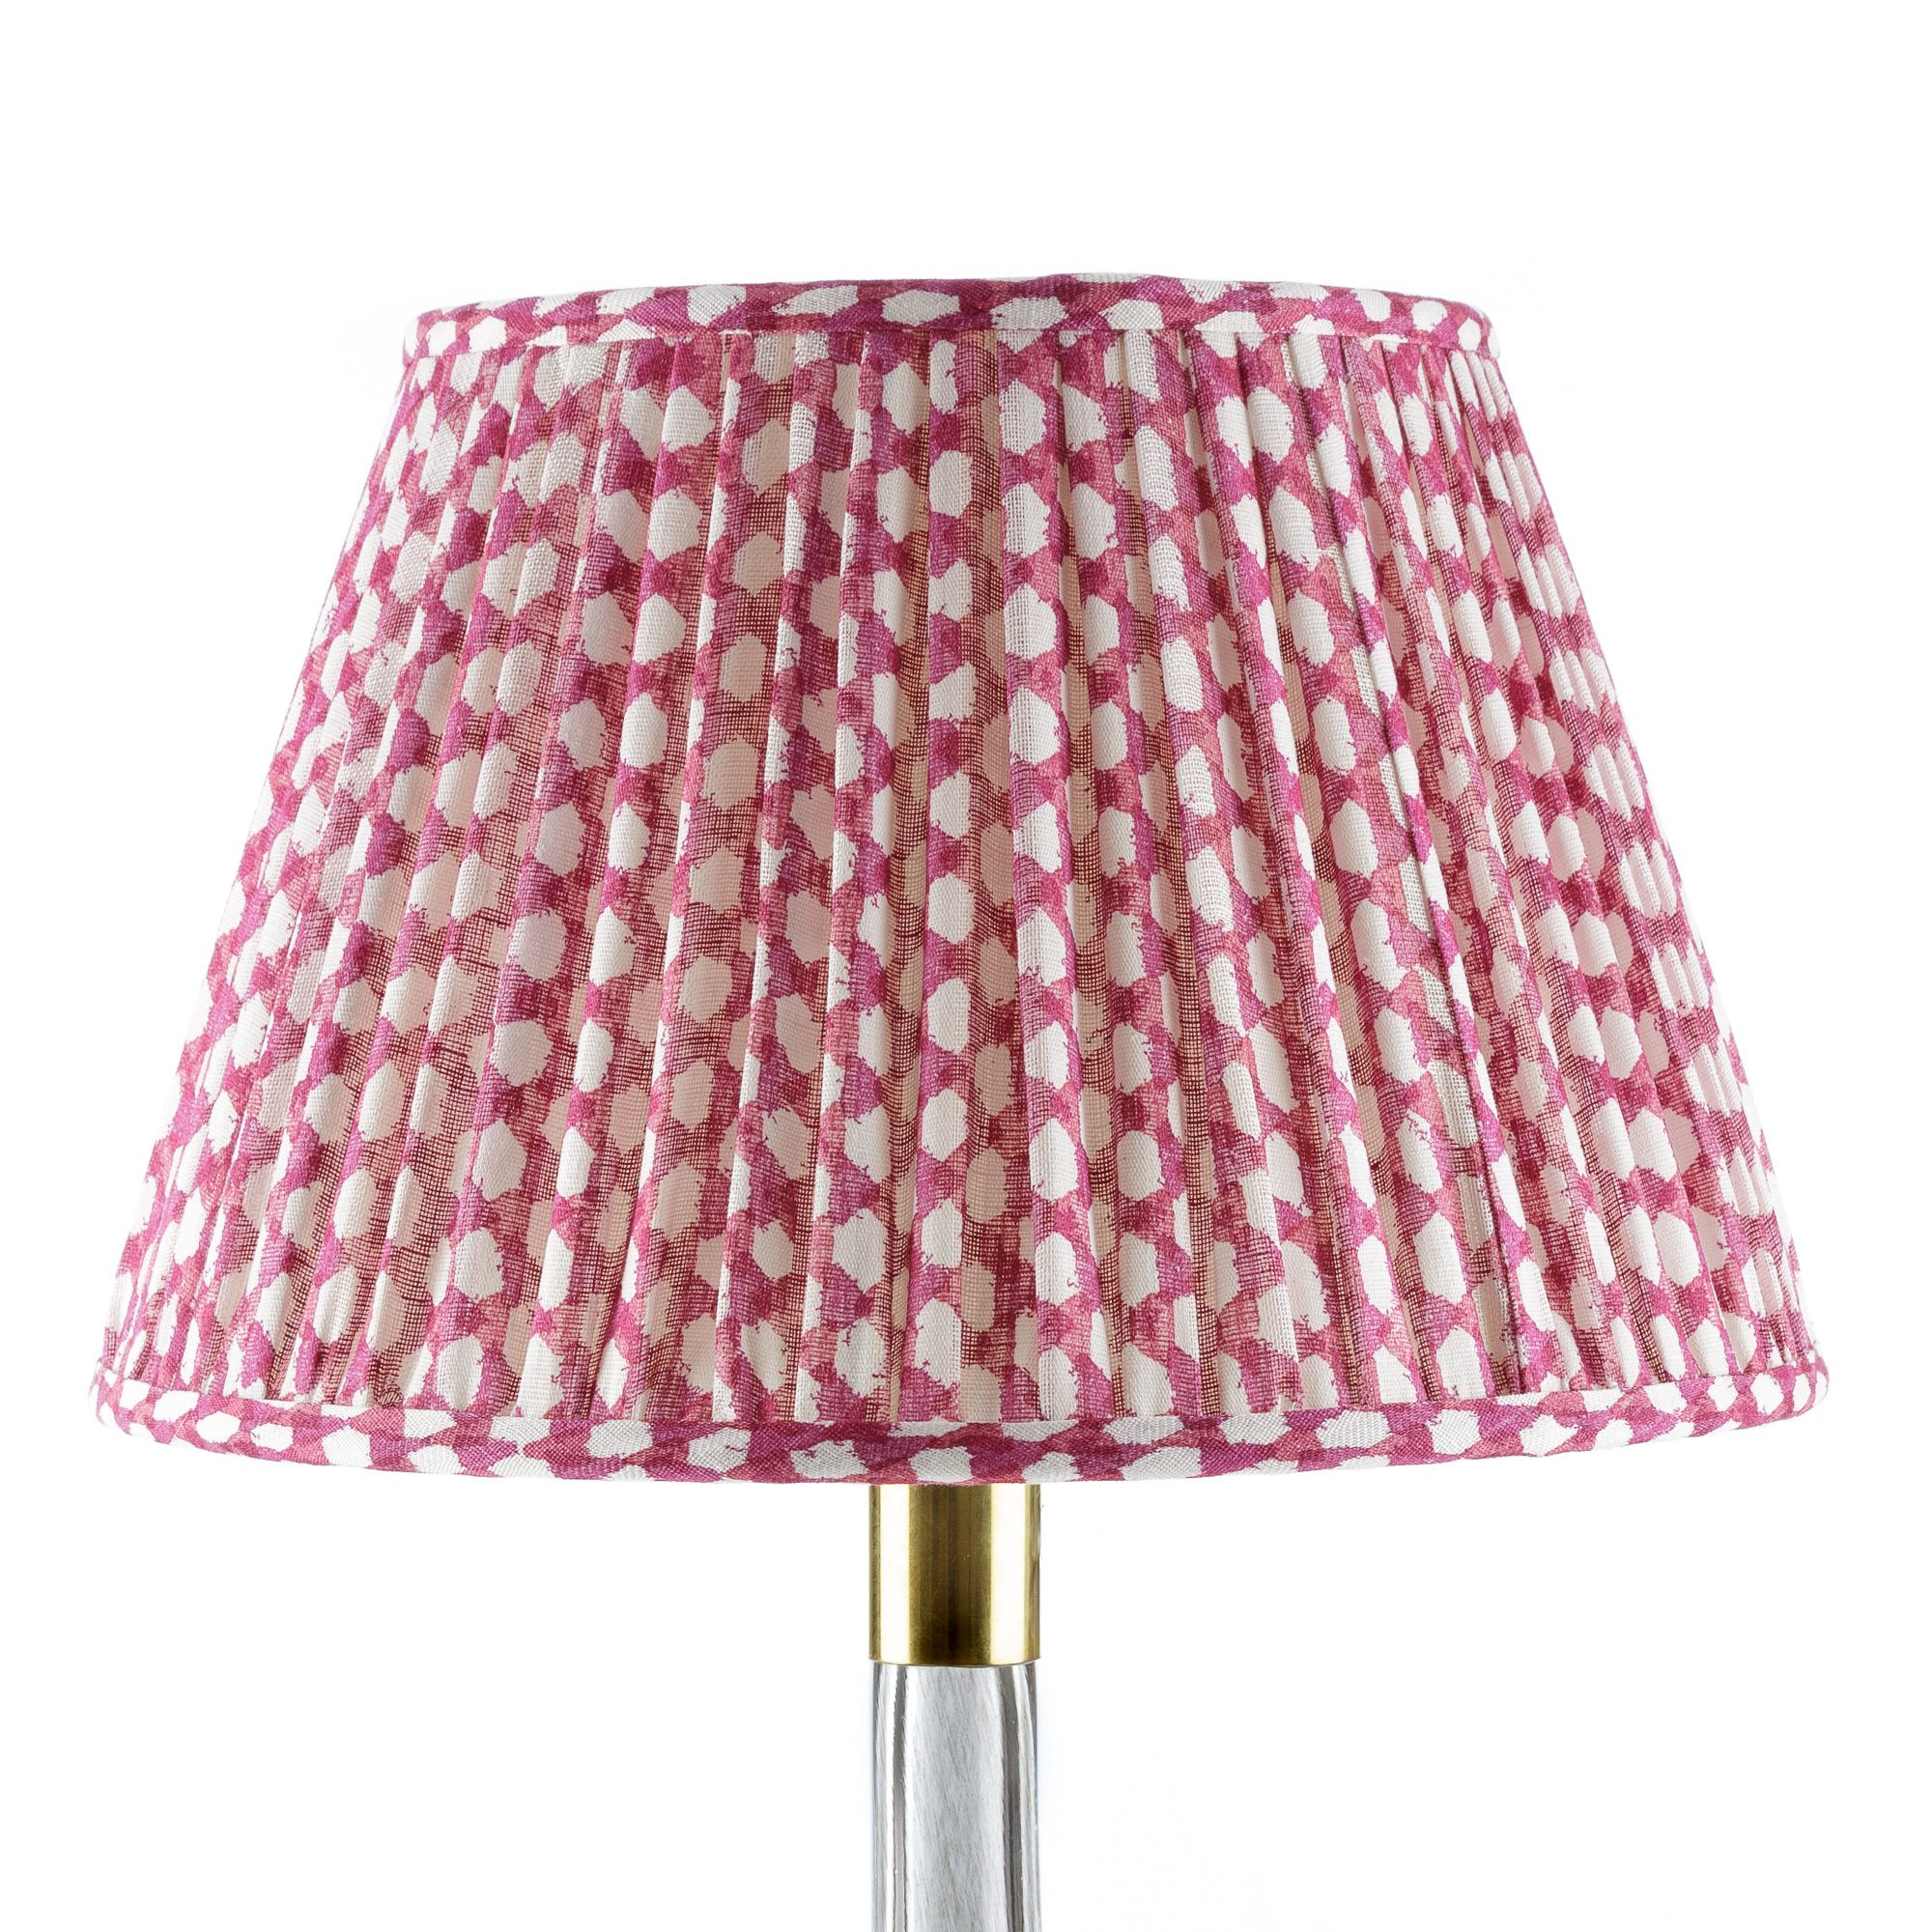 pg-063-empire-gathered-lampshade-in-fuchsia-wicker-063-1